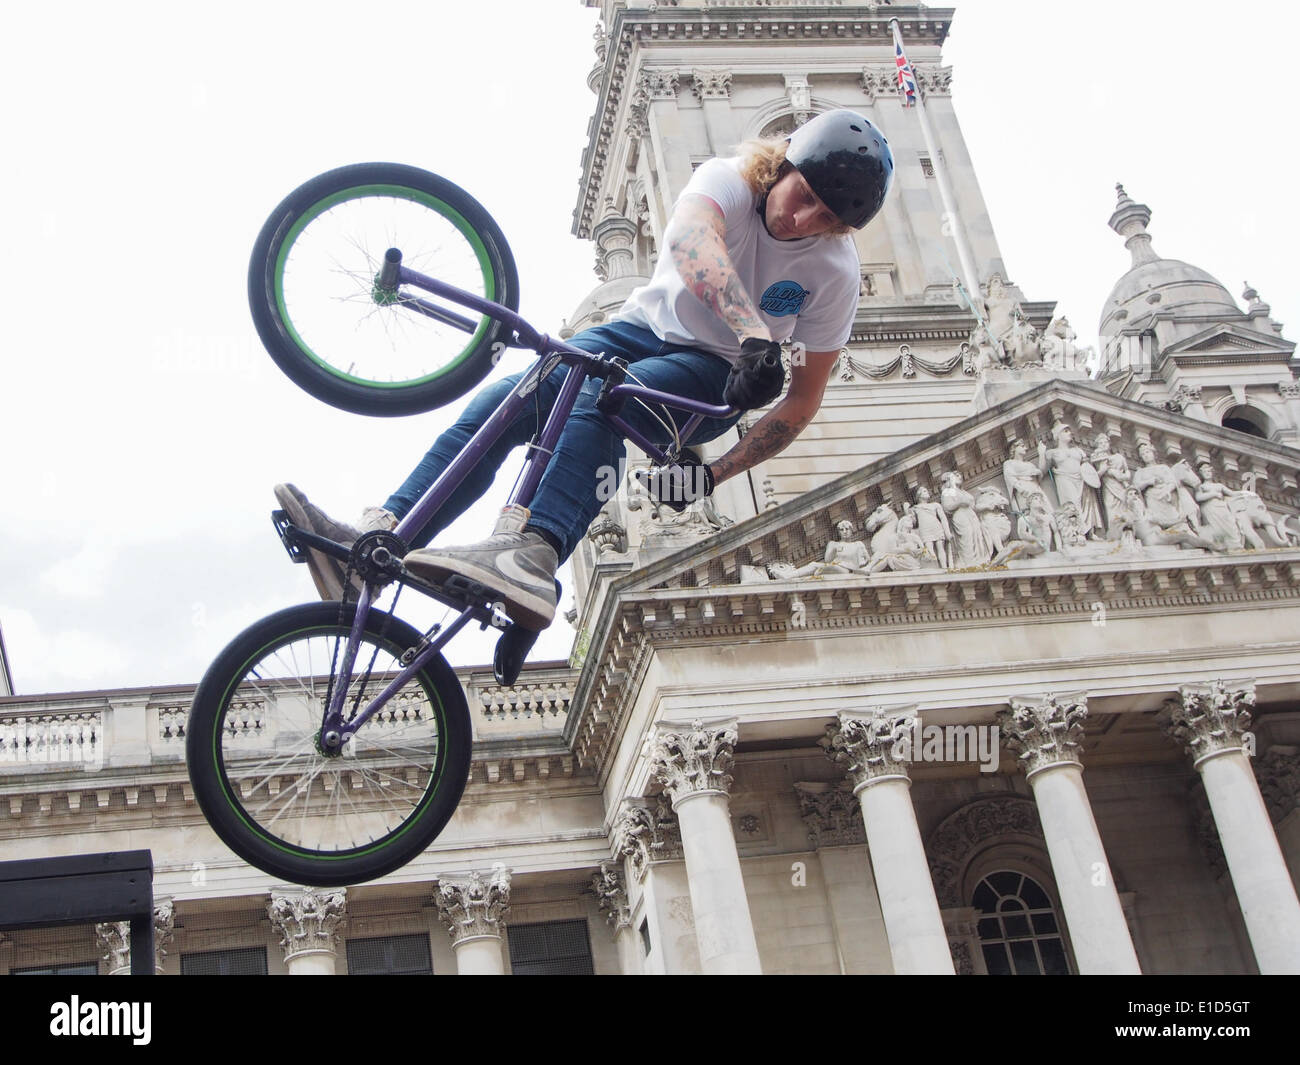 a-bmx-rider-performs-an-aerial-stunt-in-